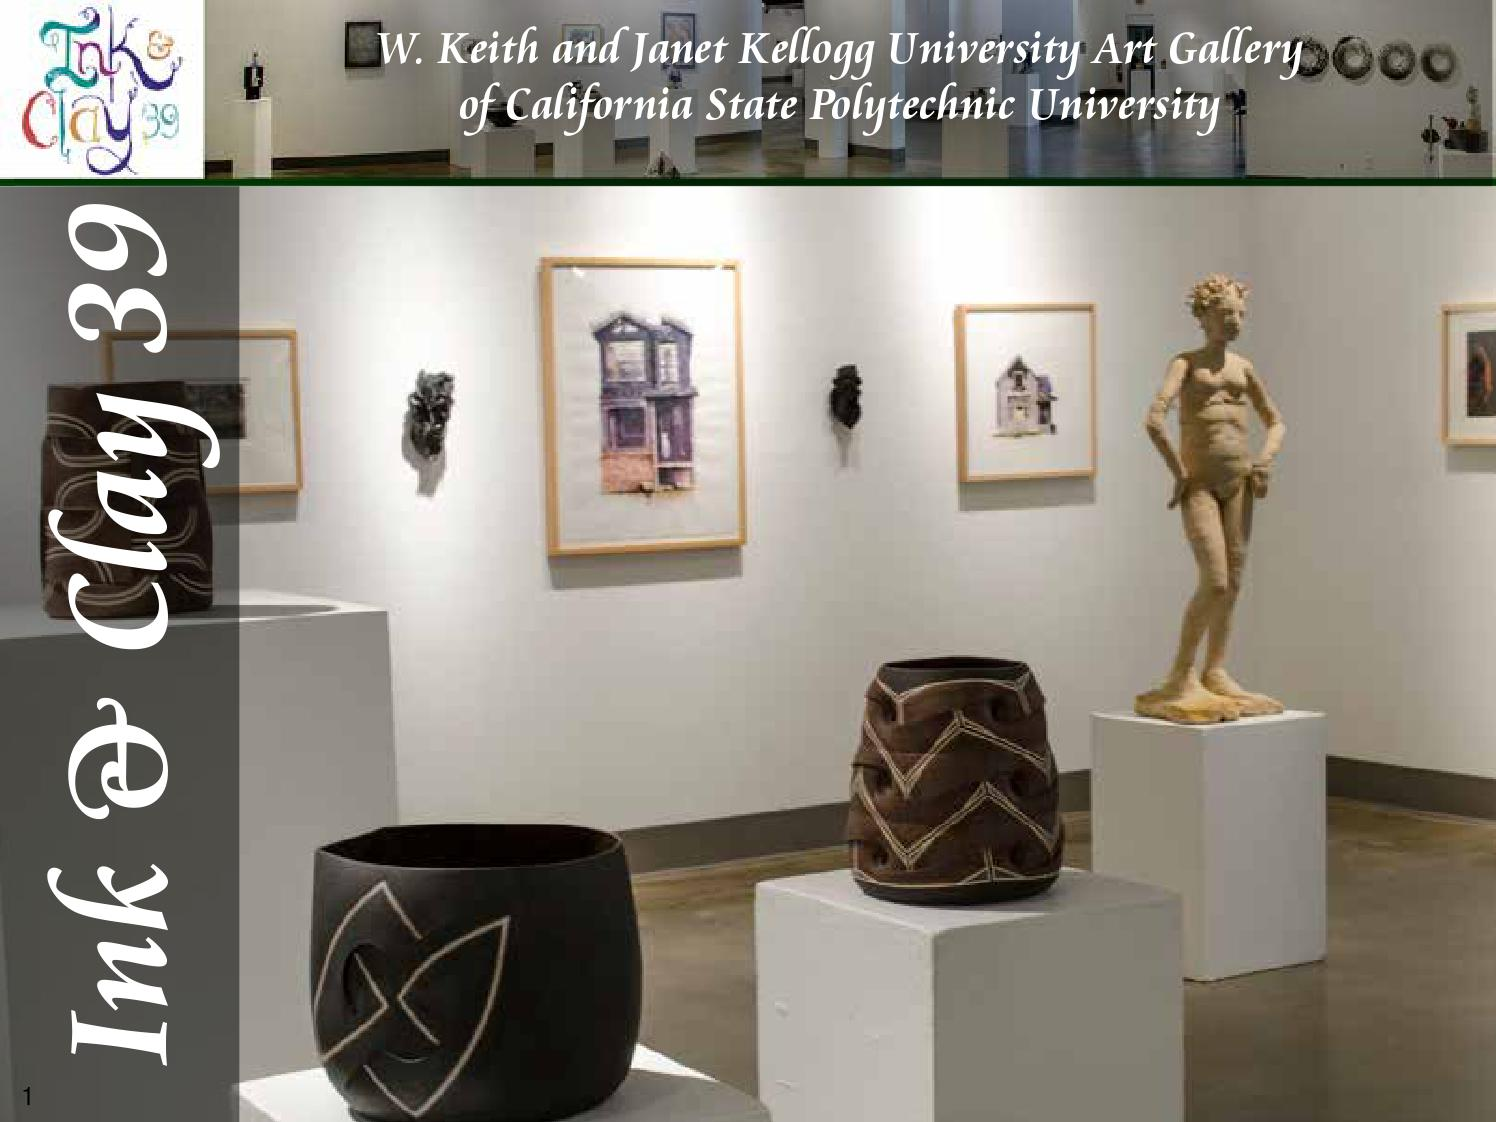 W keith and janet kellogg university art gallery ink for Doris middleman